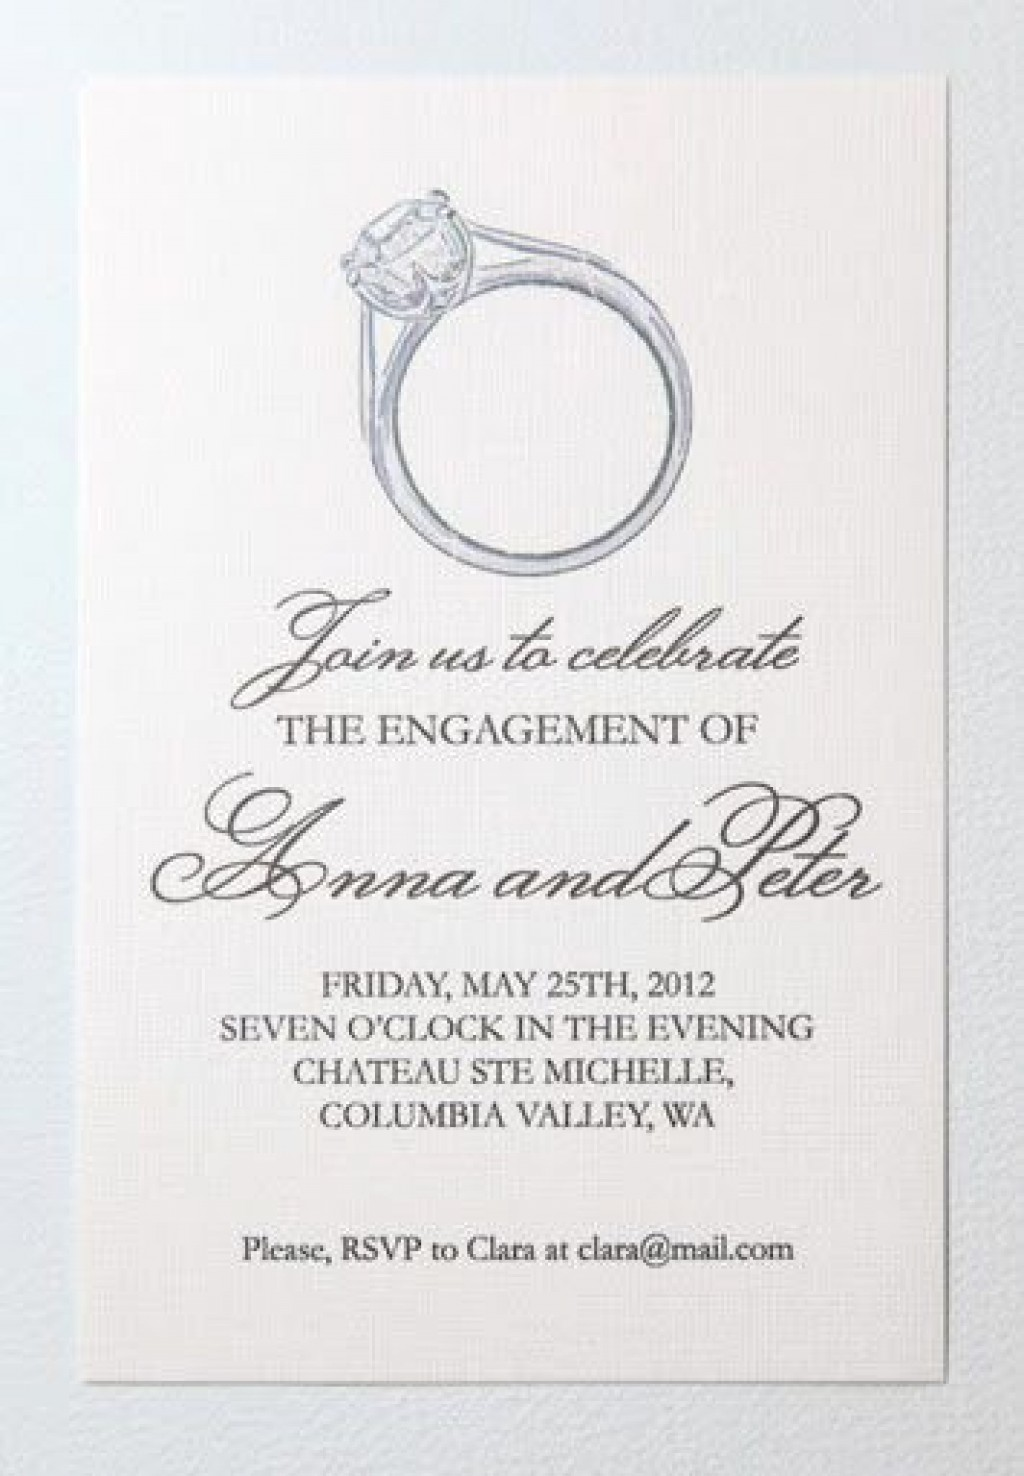 008 Unforgettable Free Engagement Invitation Template Online With Photo Highest Clarity Large